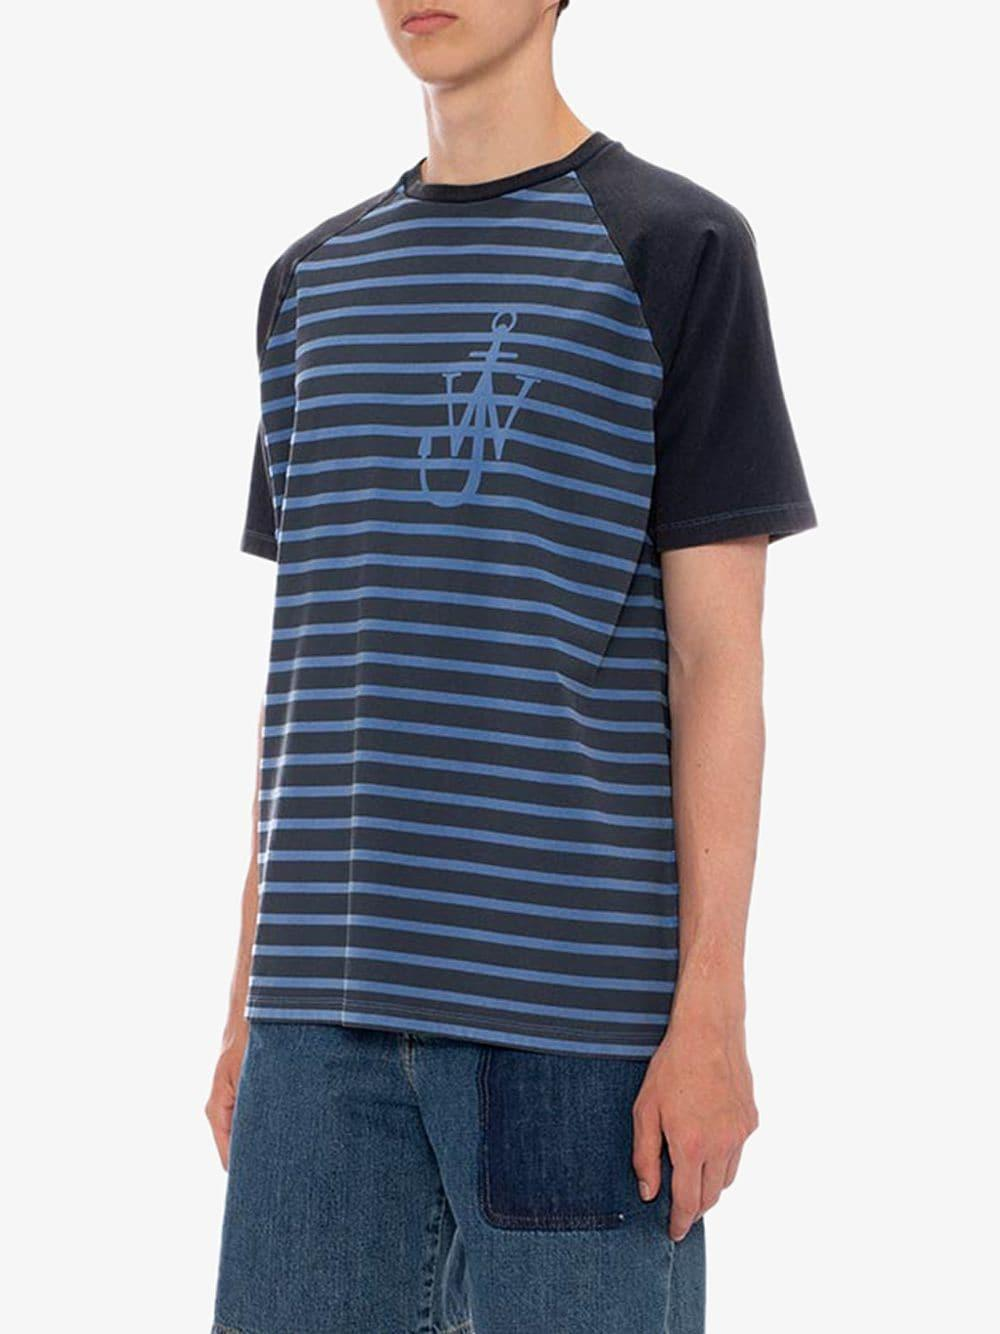 2d4f9c2ec J.W. Anderson - Blue Indigo Jwa Anchor And Stripes Short Sleeve Raglan T- shirt for. View fullscreen